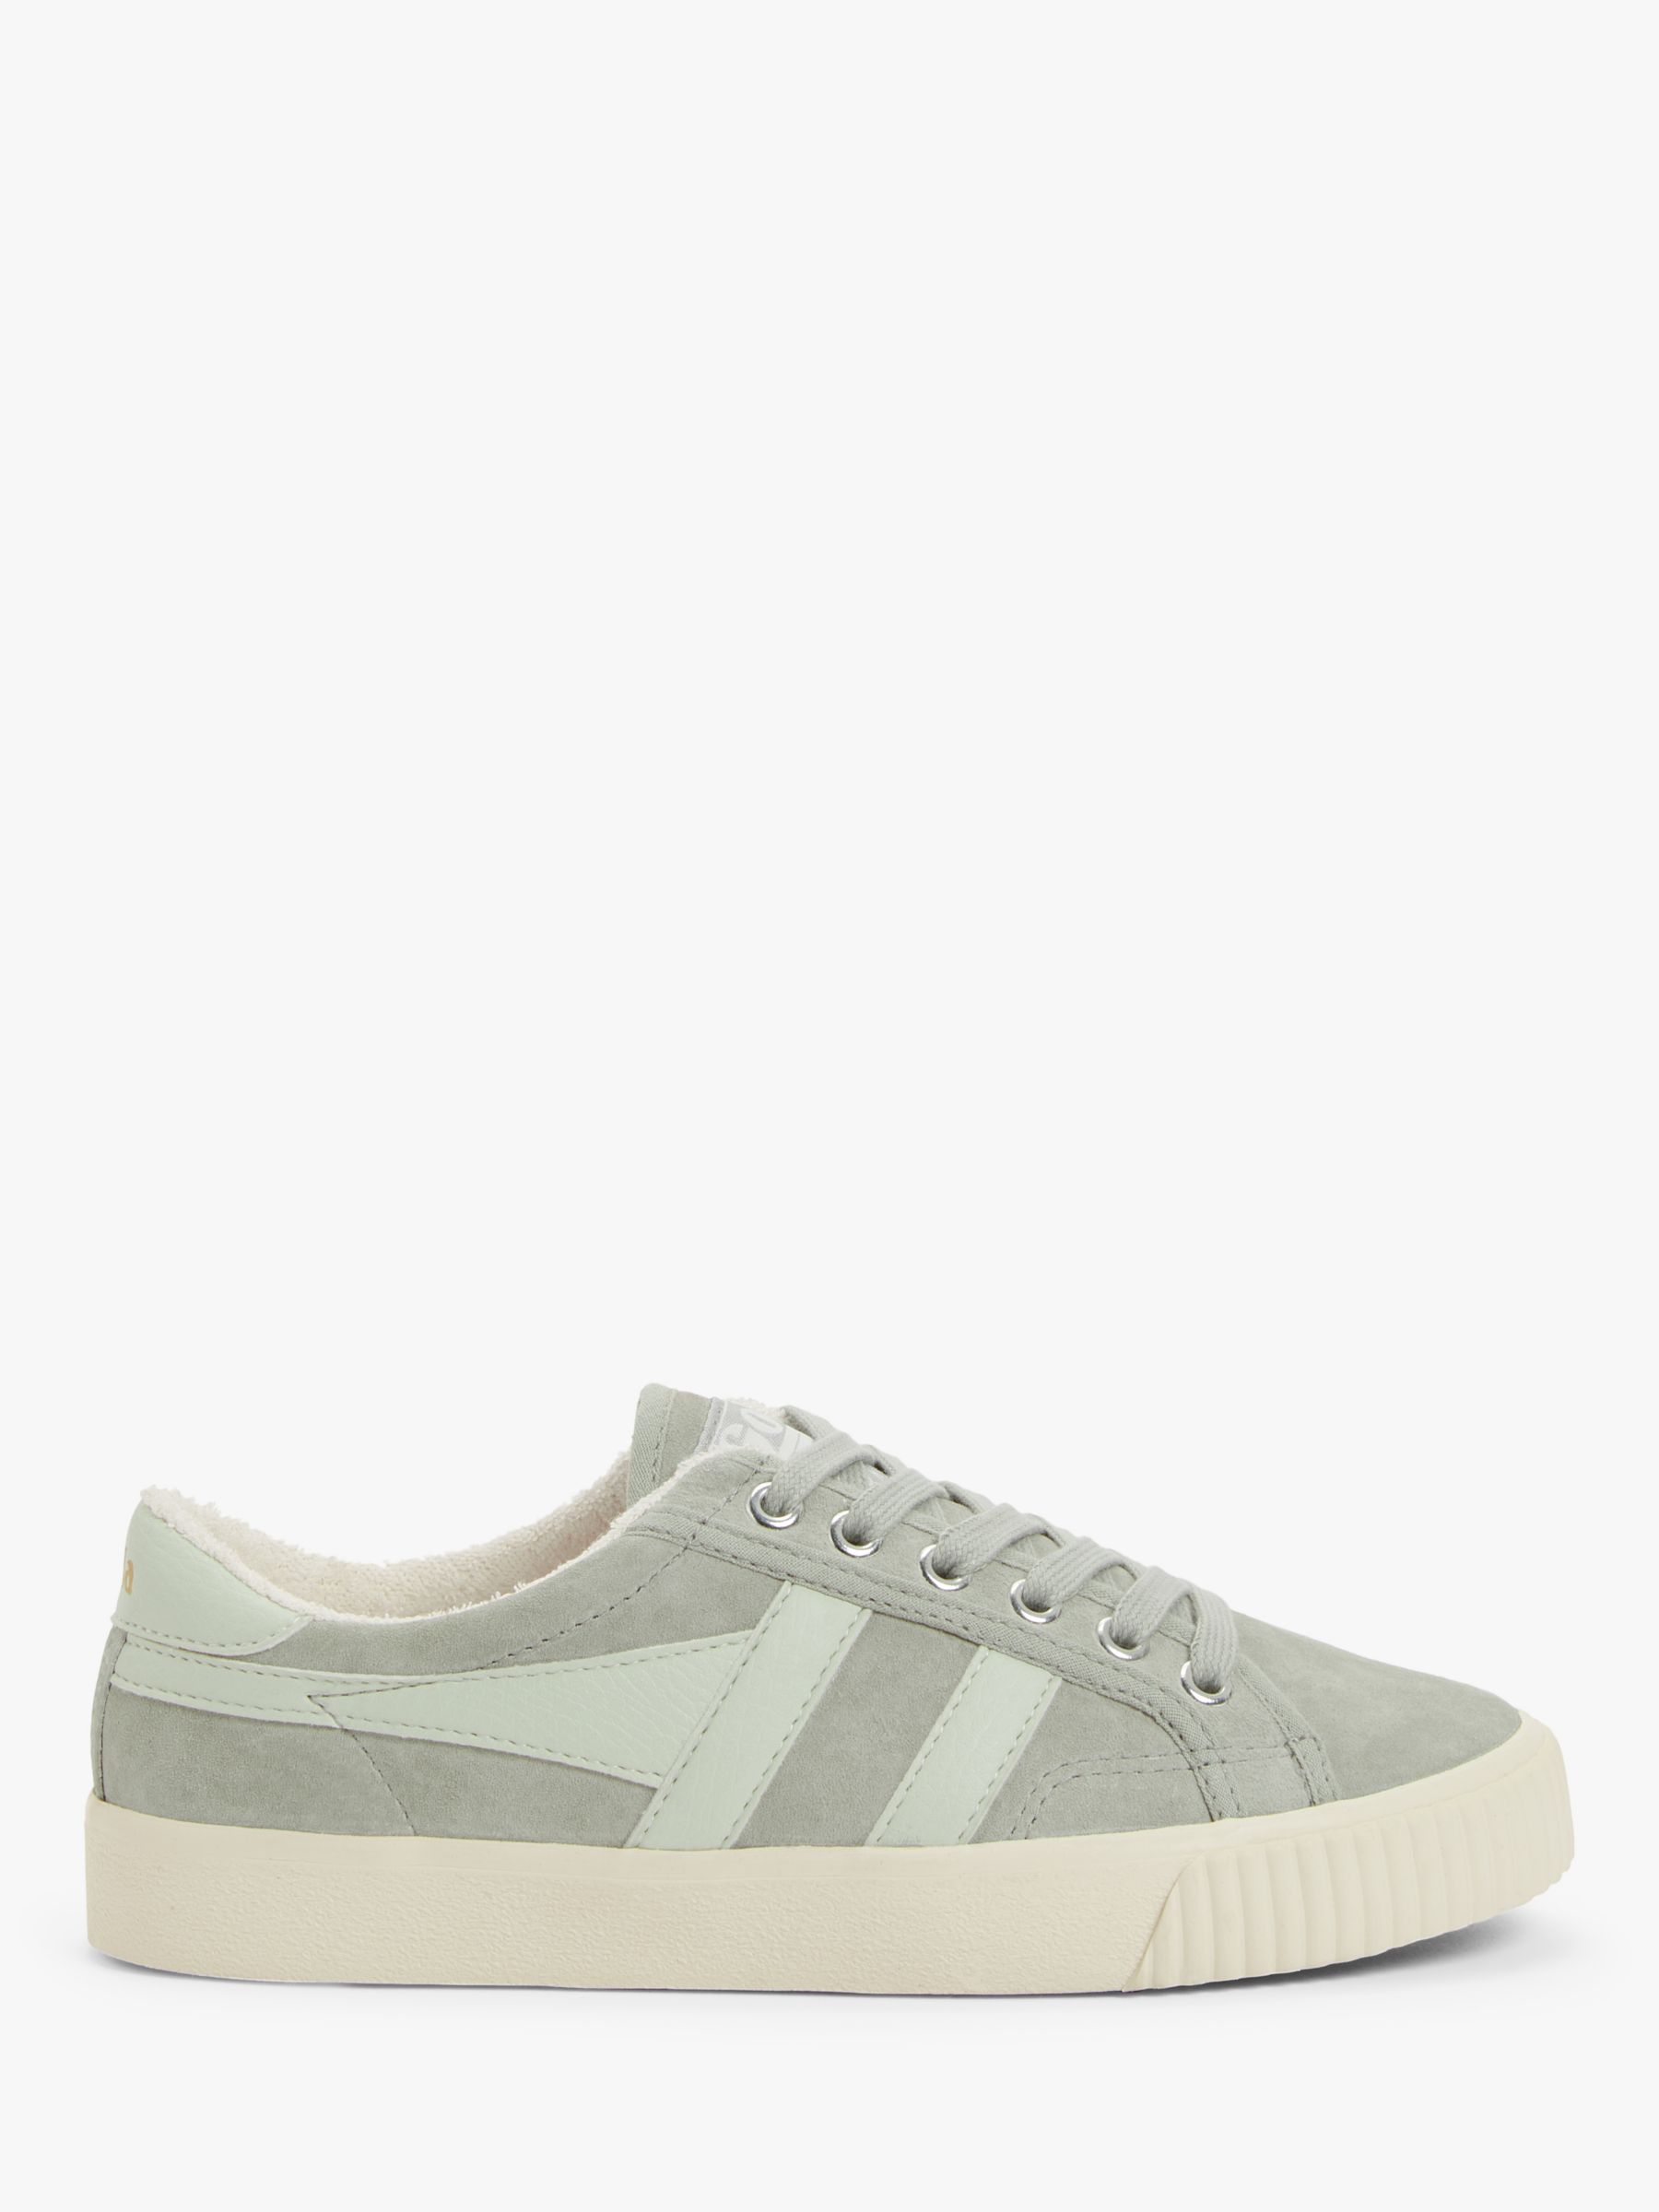 Gola Gola Tennis Mark Cox Suede Trainers, Off White/Light Grey